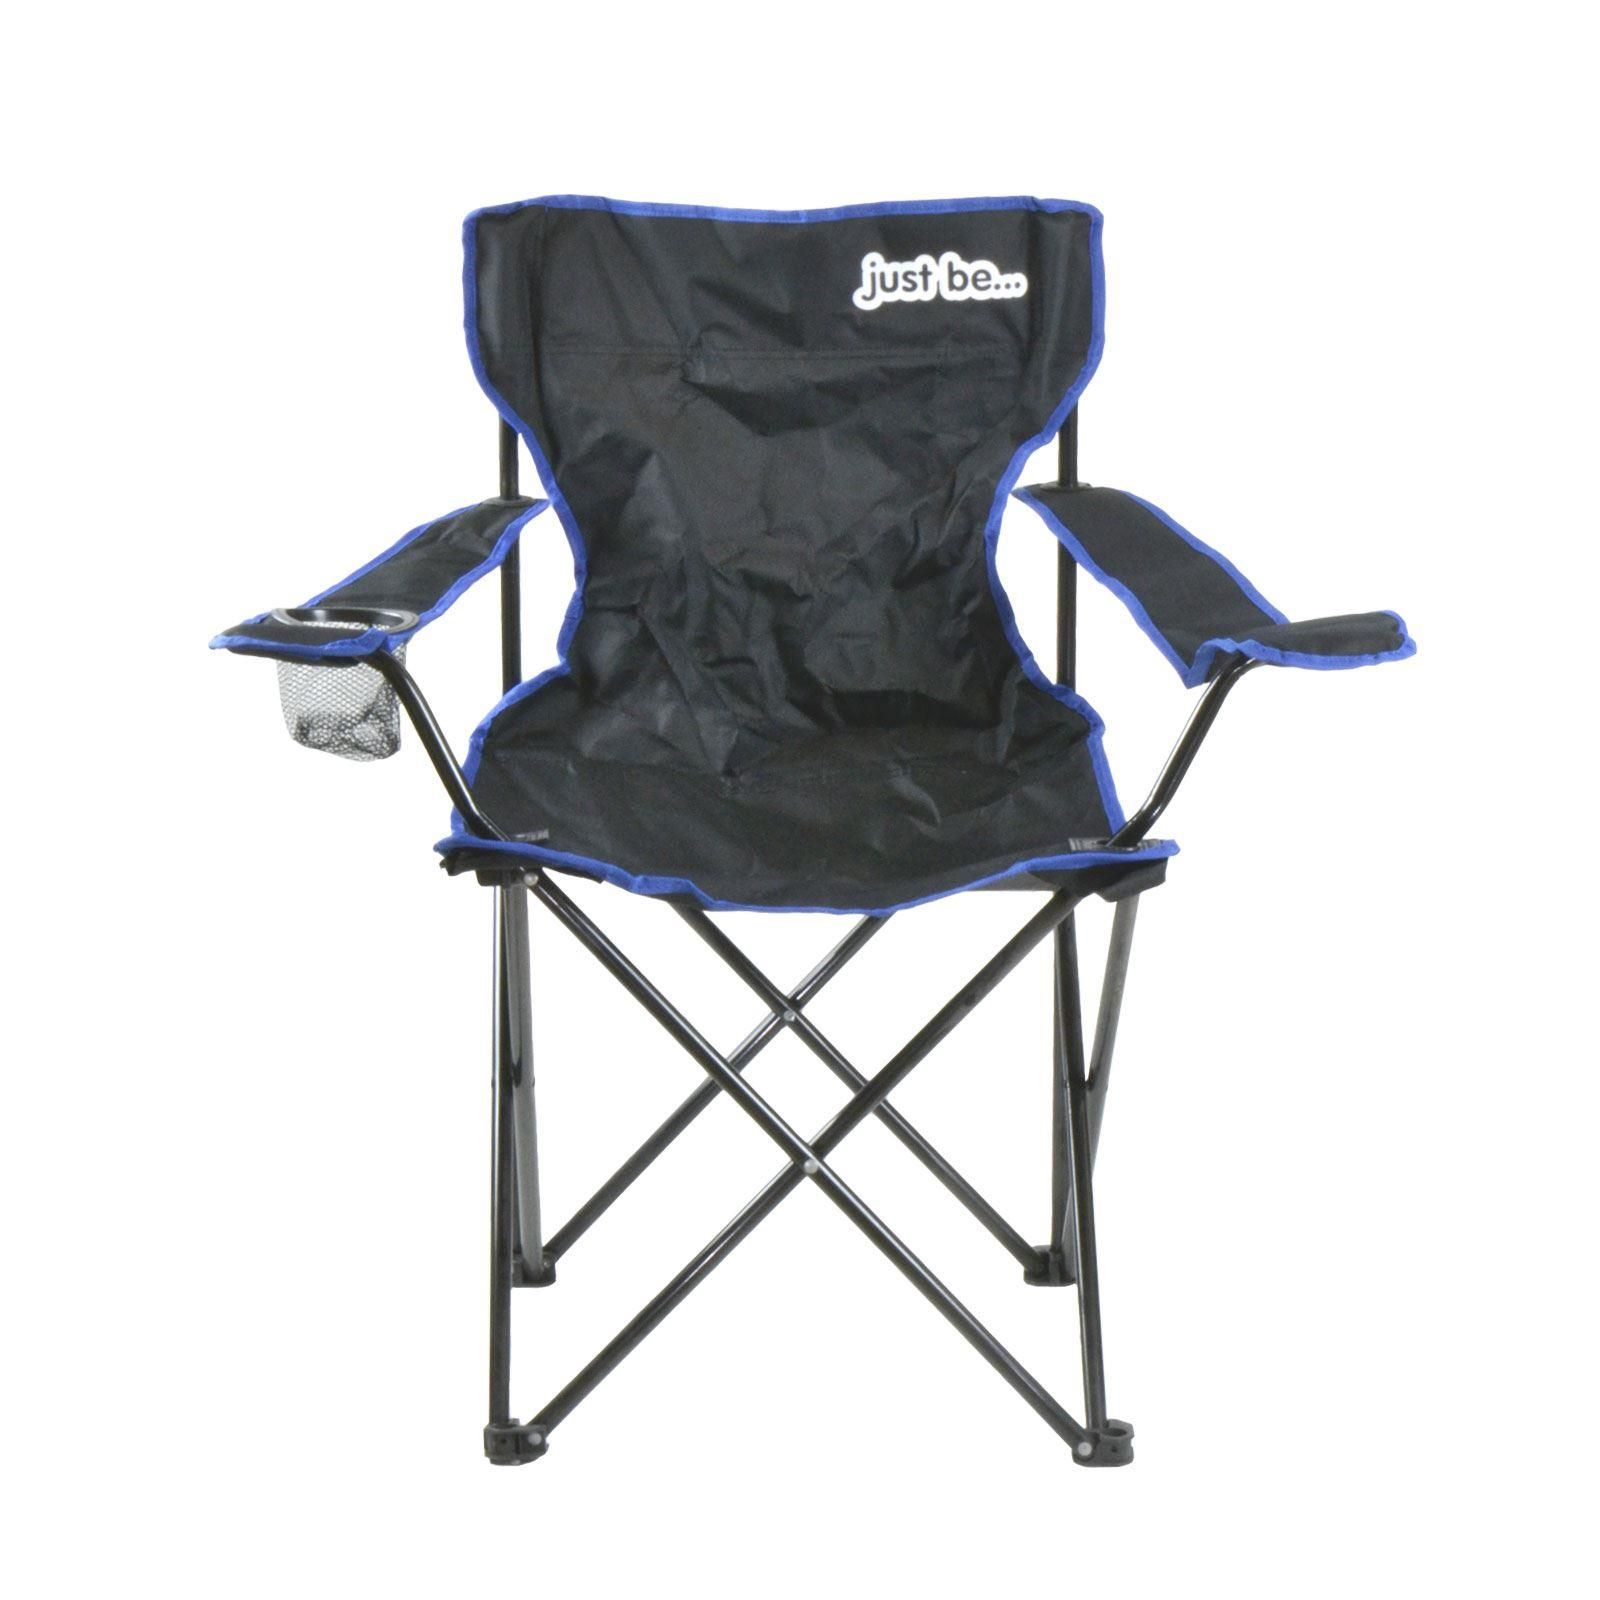 just be Foldable Black Camping Chair with Blue Trim